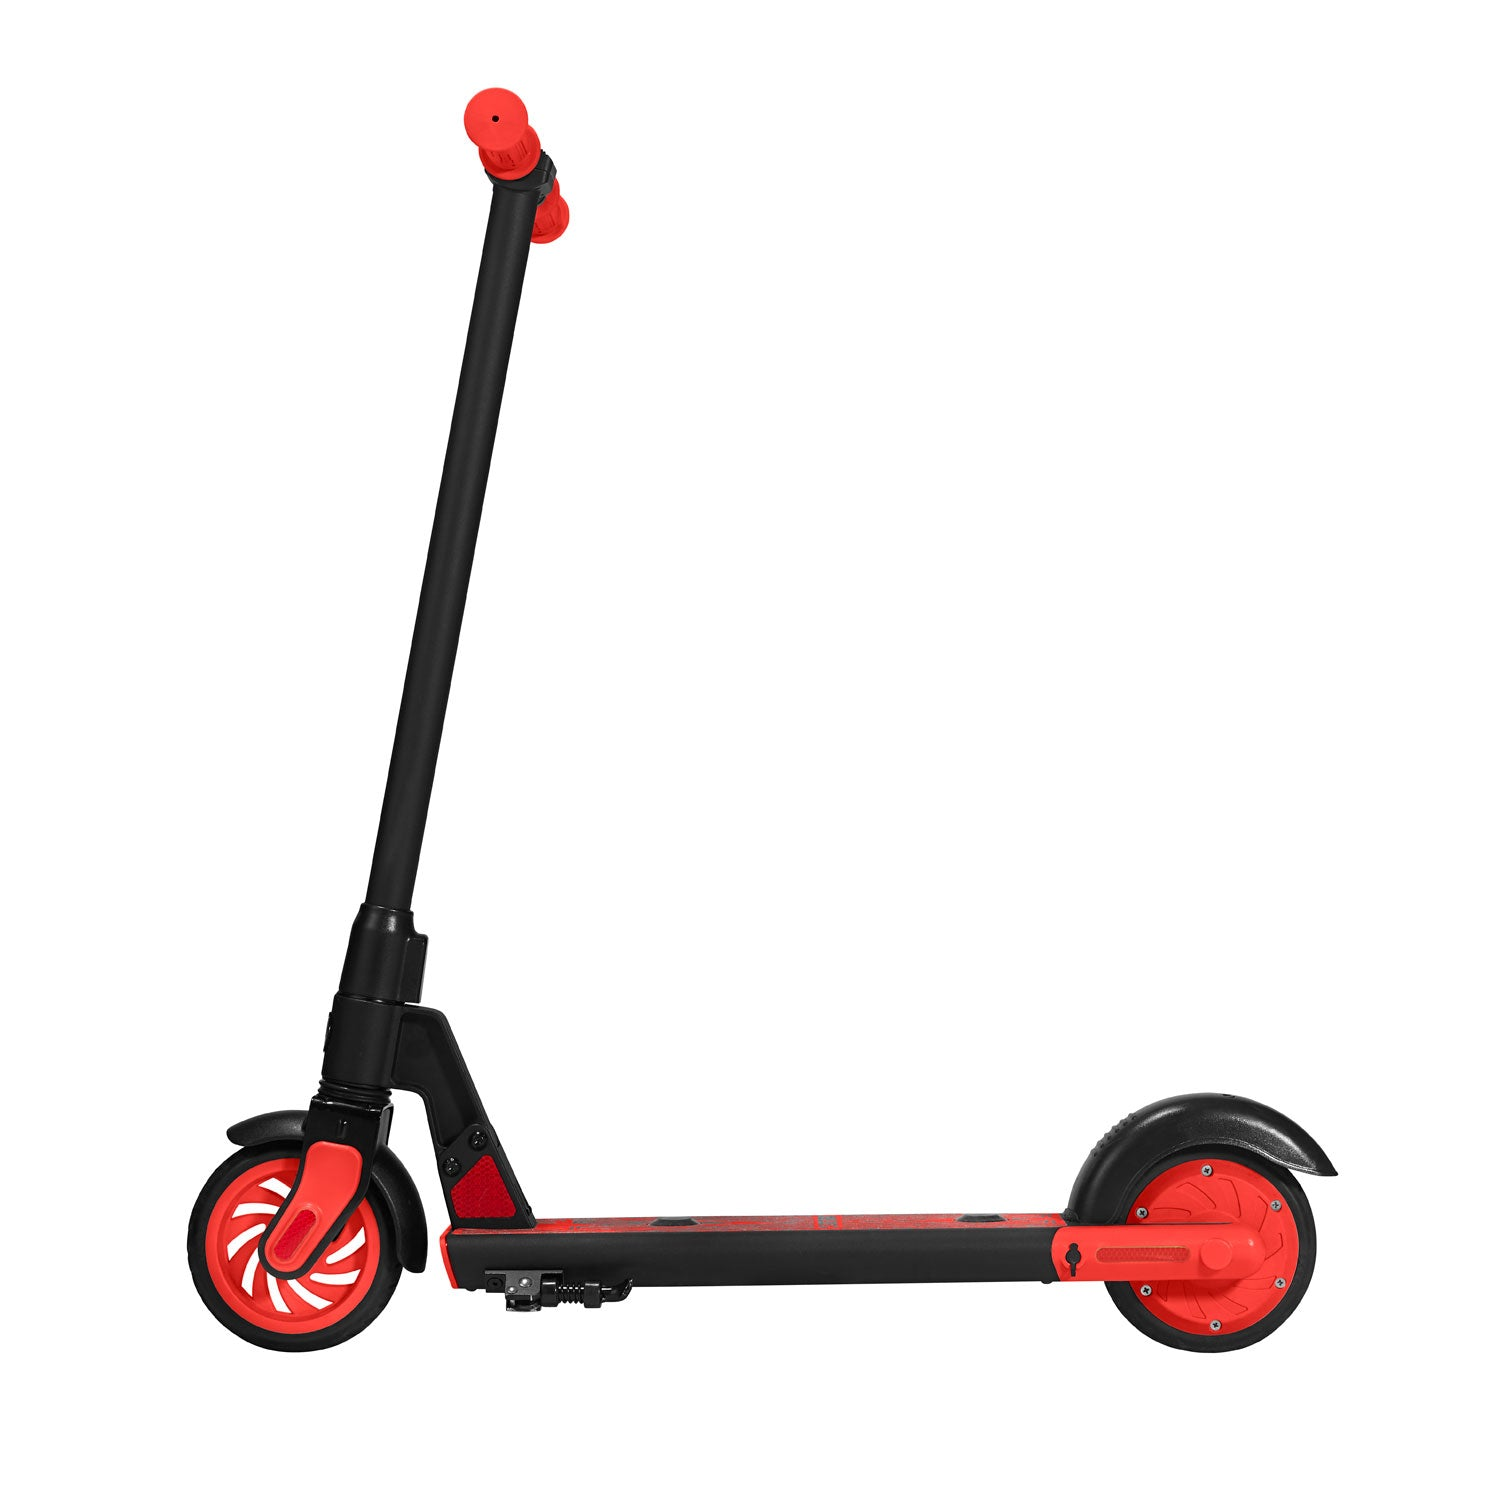 Red gks electric scooter for kids side image